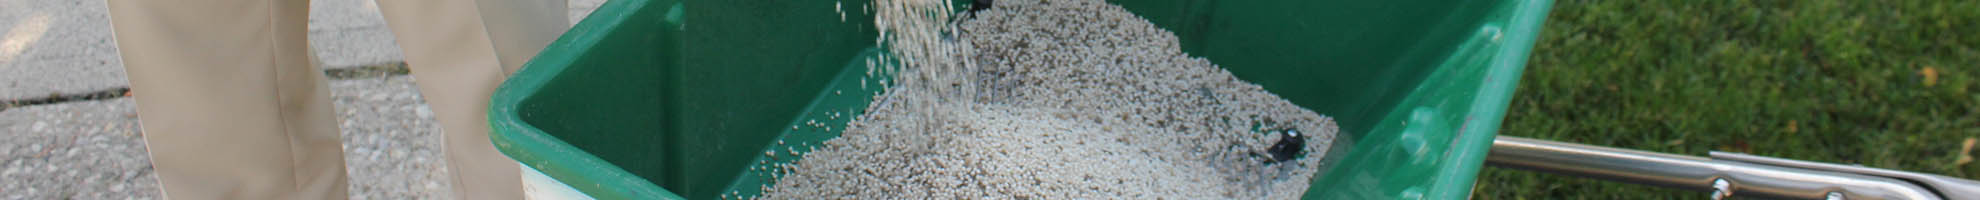 Slow release fertilizers are designed to release slowly and provide even feeding for long periods of time.